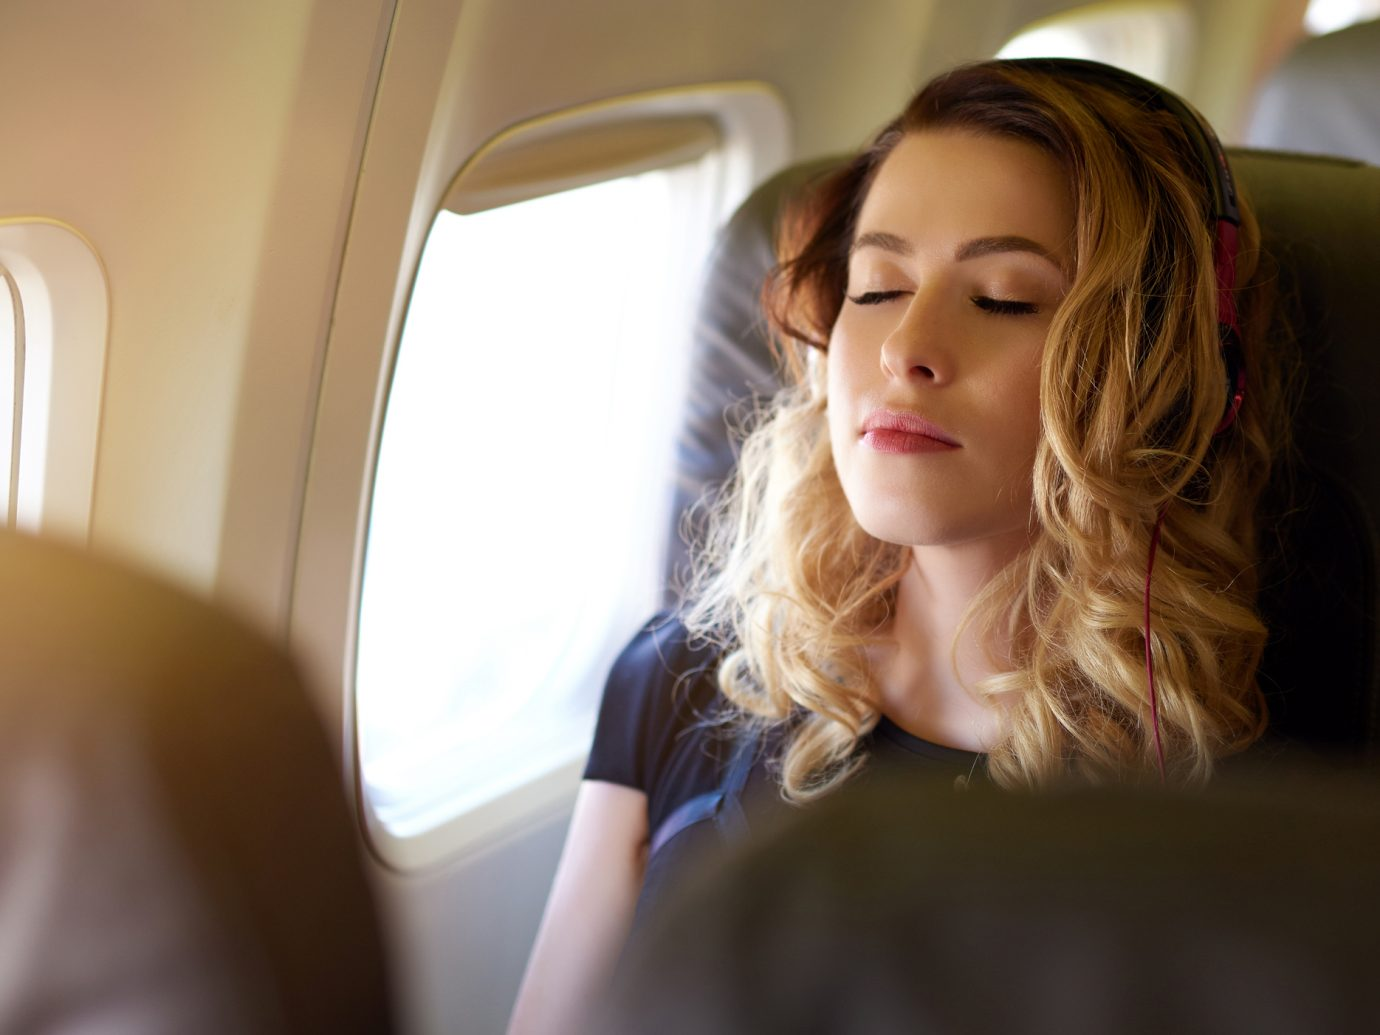 A young woman with her eyes closed enjoying a good and relaxing flight.photo taken in the airplane.